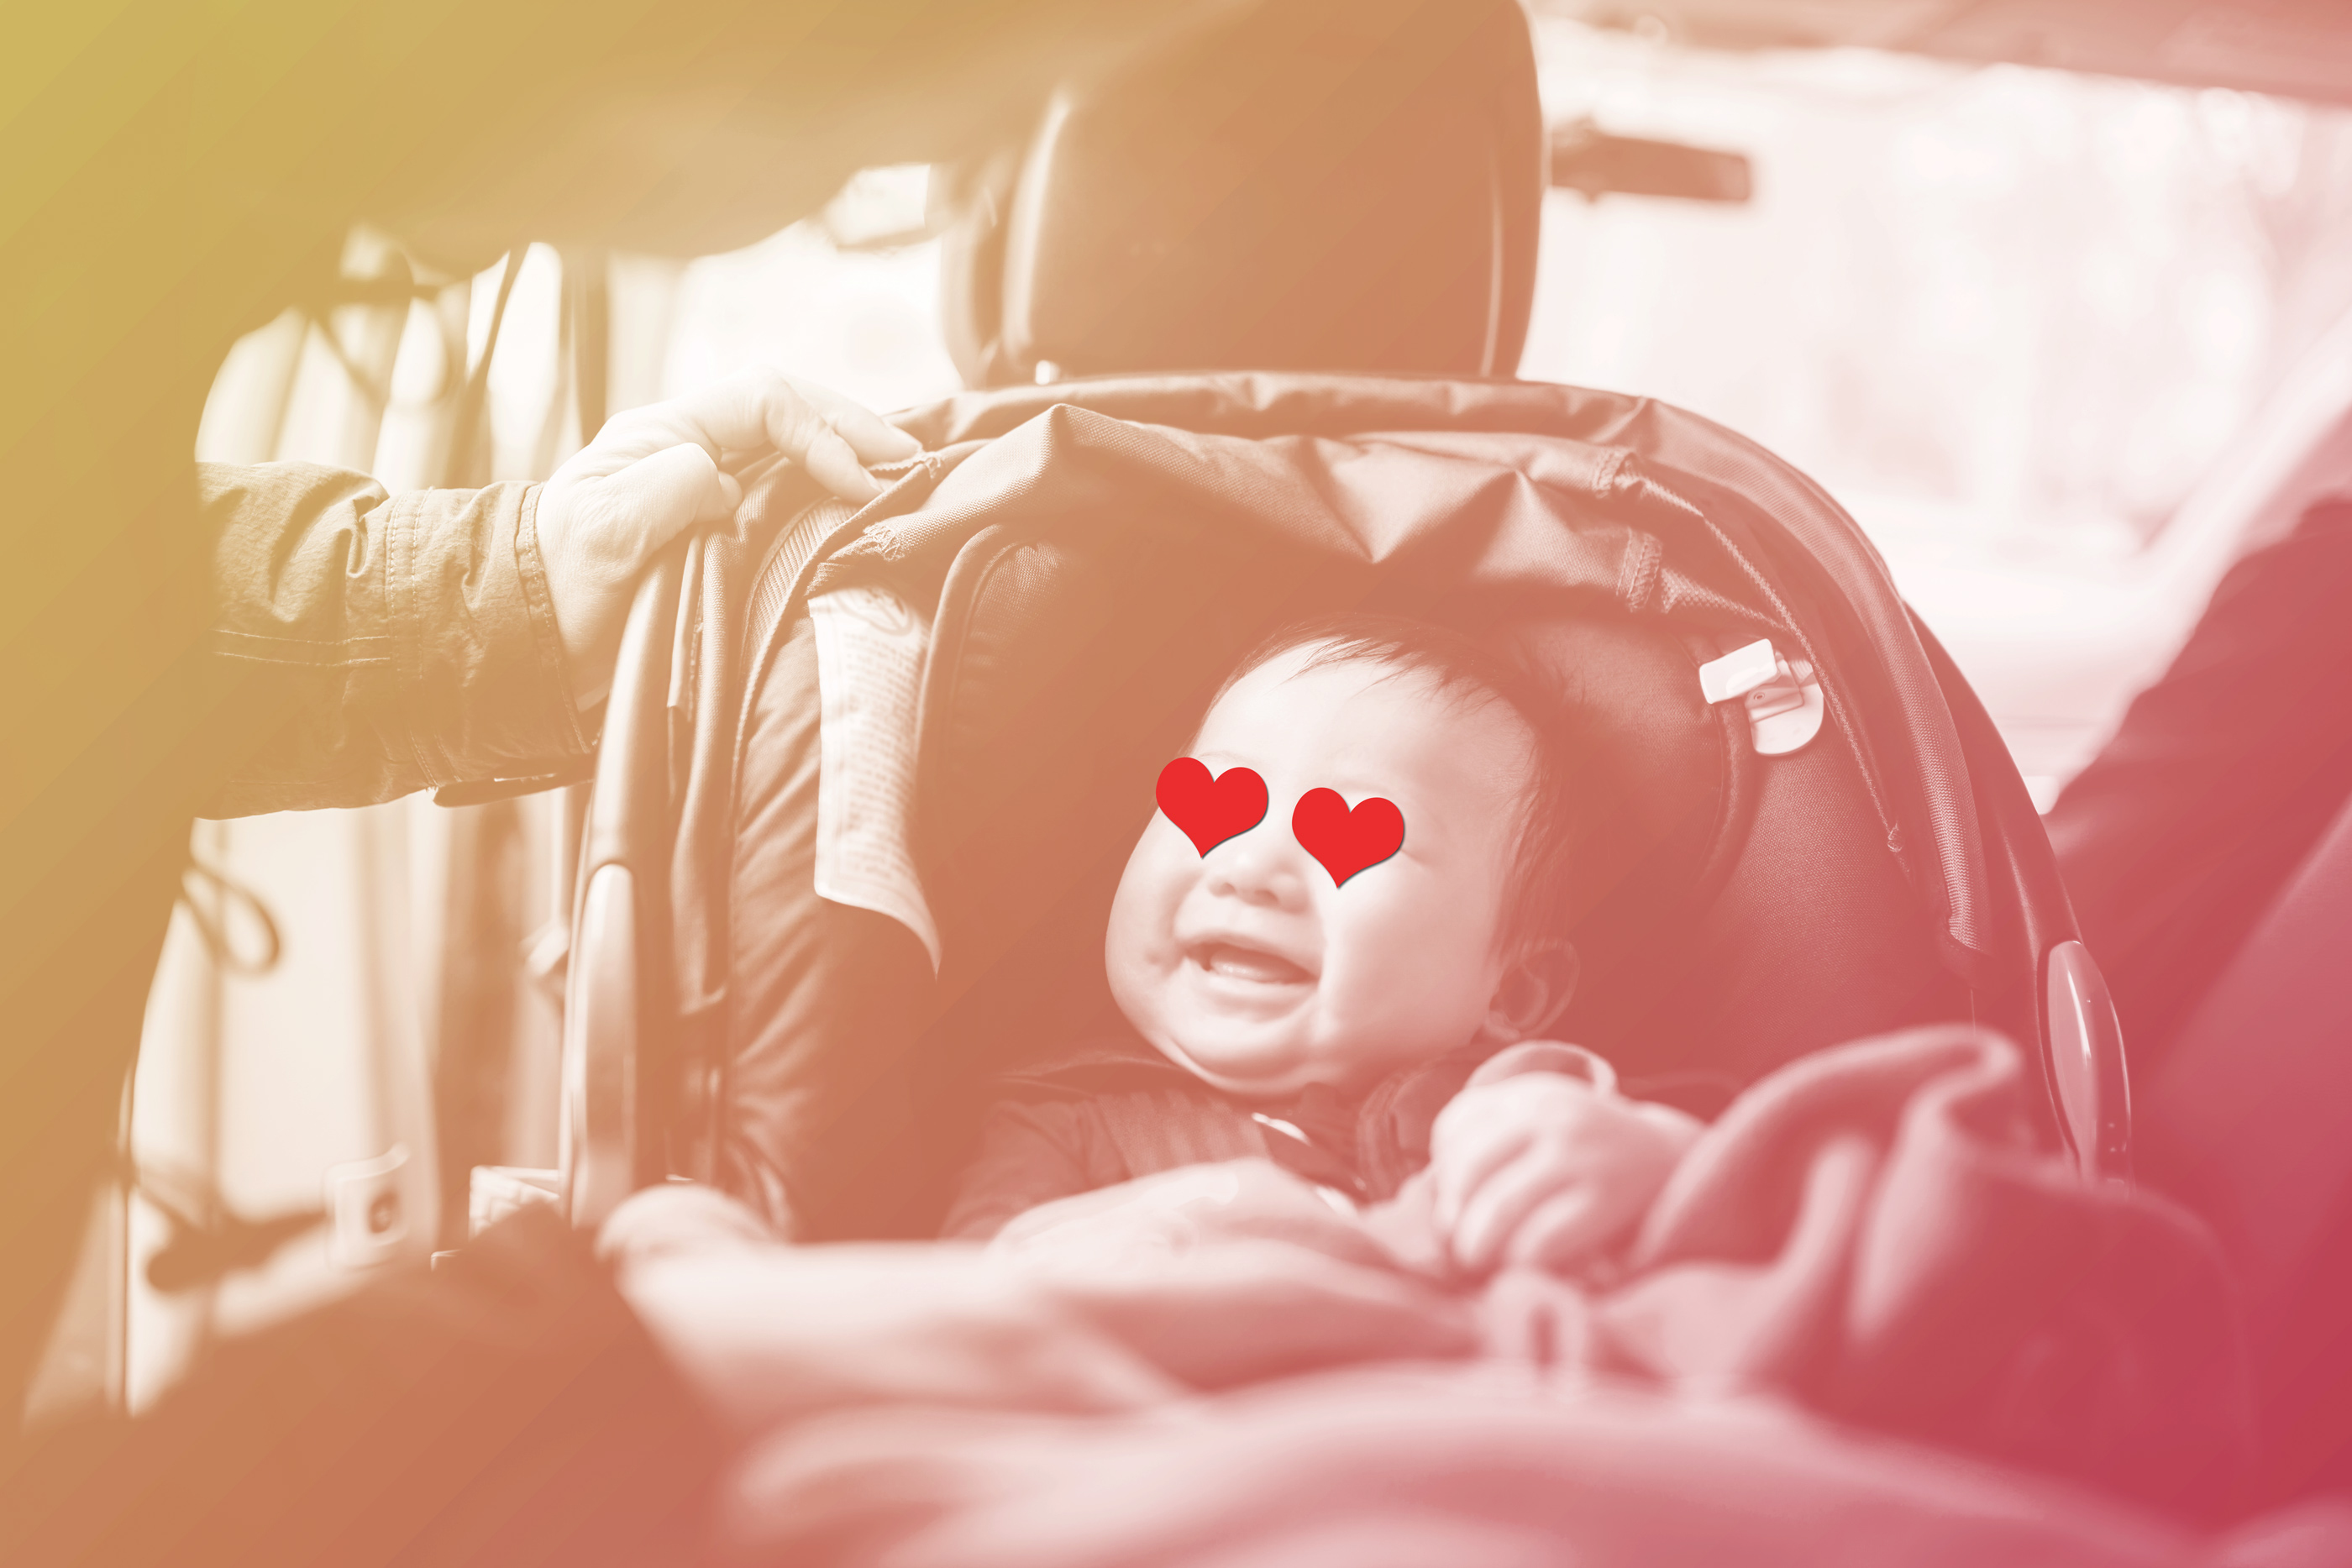 Can We Stop Saying Babies Are Flirting With People?